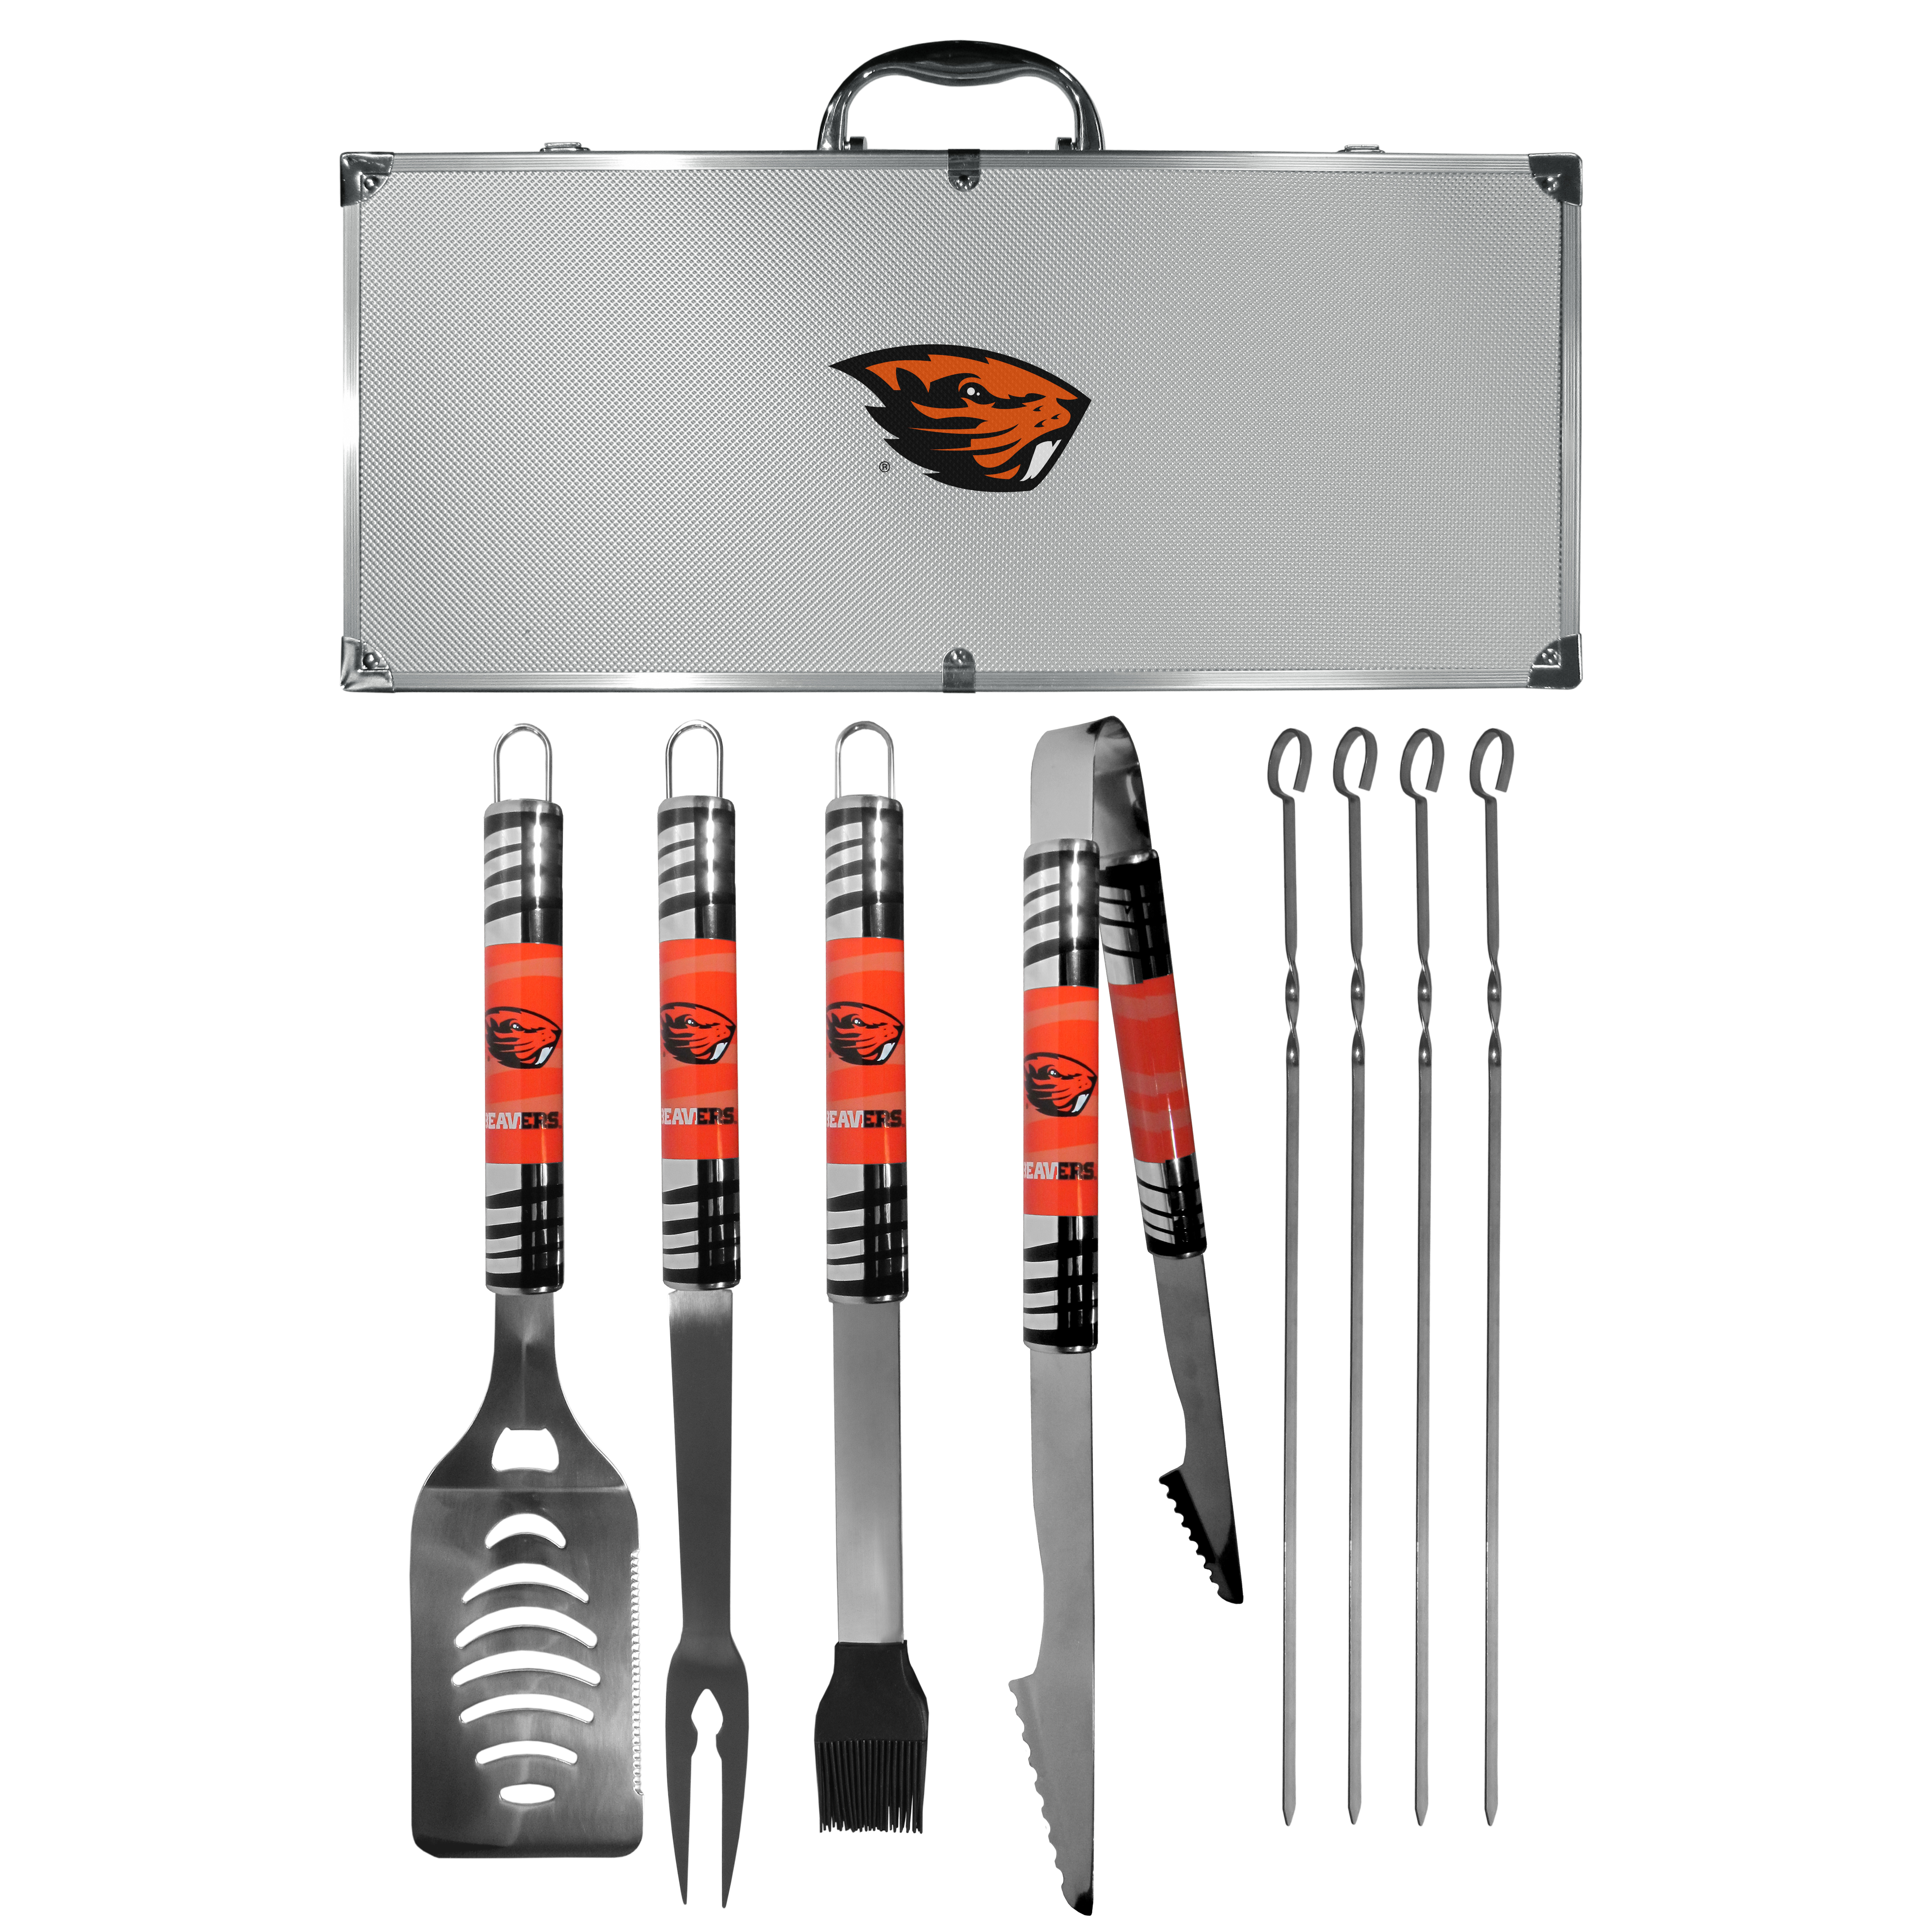 Oregon St. Beavers 8 pc Tailgater BBQ Set - This is the ultimate Oregon St. Beavers tailgate accessory! The high quality, 420 grade stainless steel tools are durable and well-made enough to make even the pickiest grill master smile. This complete grill accessory kit includes; 4 skewers, spatula with bottle opener and serrated knife edge, basting brush, tongs and a fork. The 18 inch metal carrying case is perfect for great outdoor use making grilling an ease while camping, tailgating or while having a game day party on your patio. The tools are 17 inches long and feature vivid team graphics. The metal case features a large team emblem with exceptional detail. This high-end men's gift is sure to be a hit as a present on Father's Day or Christmas.